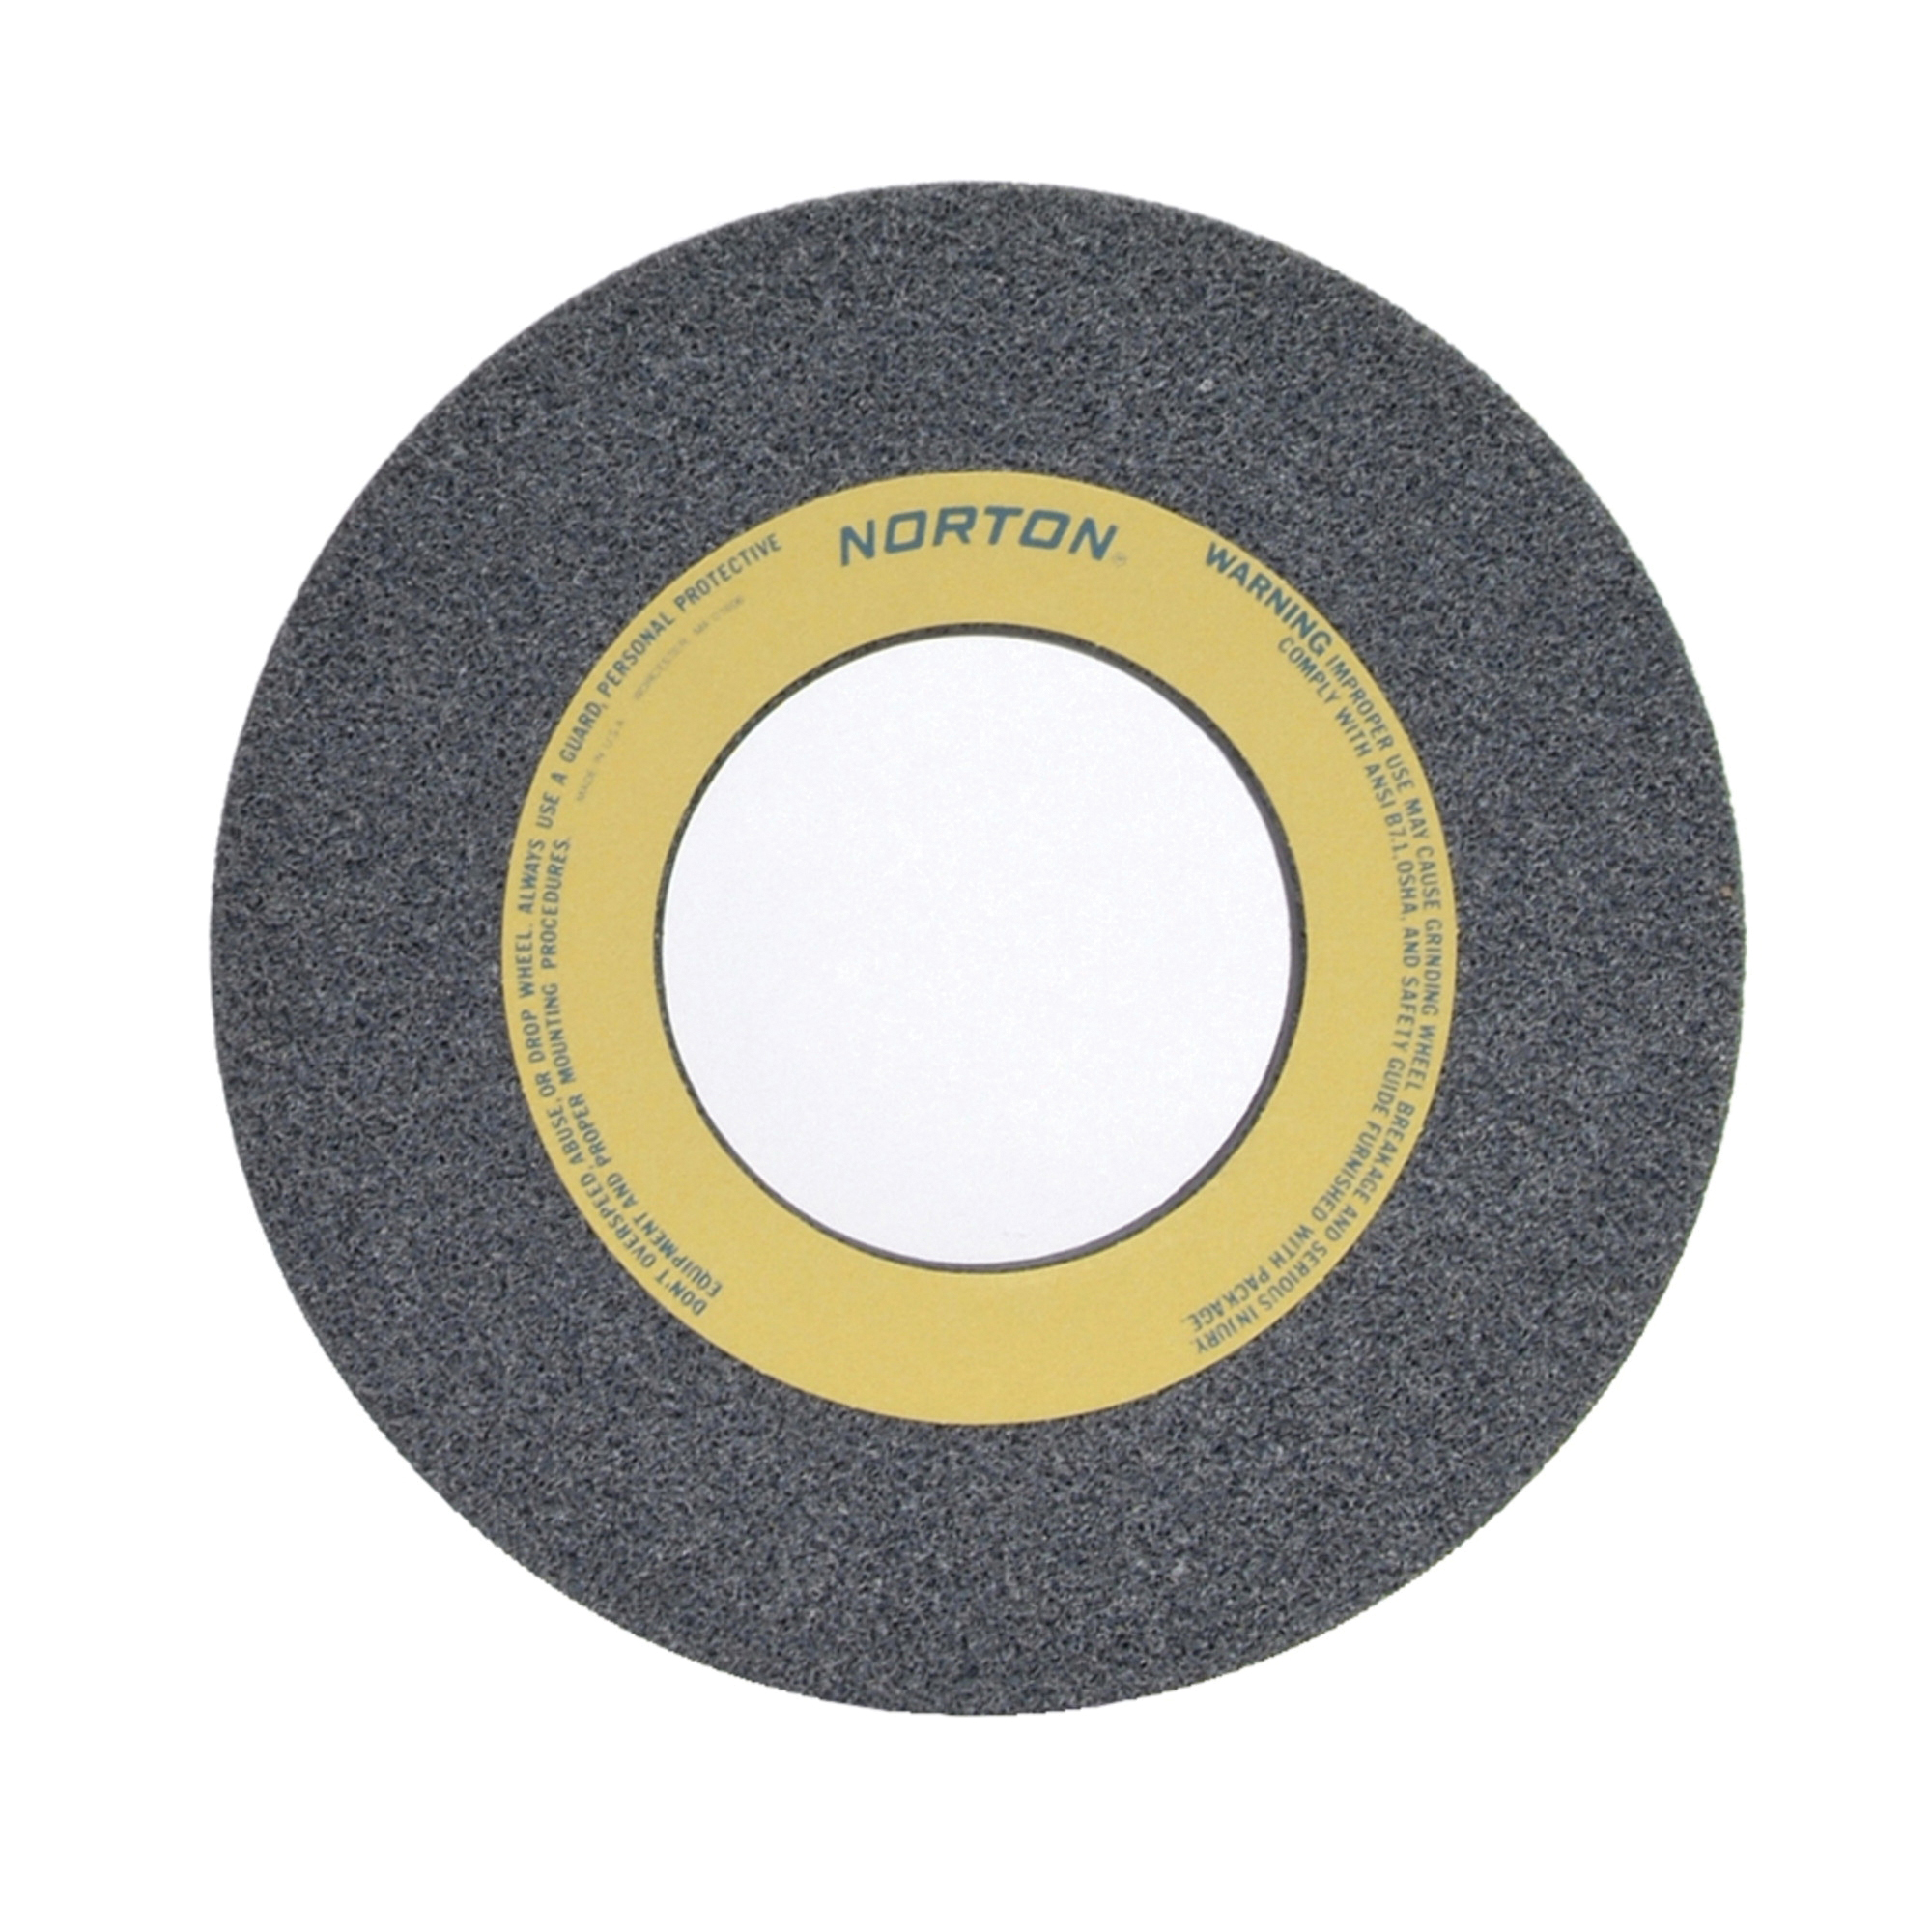 Norton® 66253263120 32A Straight Toolroom Wheel, 12 in Dia x 1-1/2 in THK, 5 in Center Hole, 46 Grit, Aluminum Oxide Abrasive